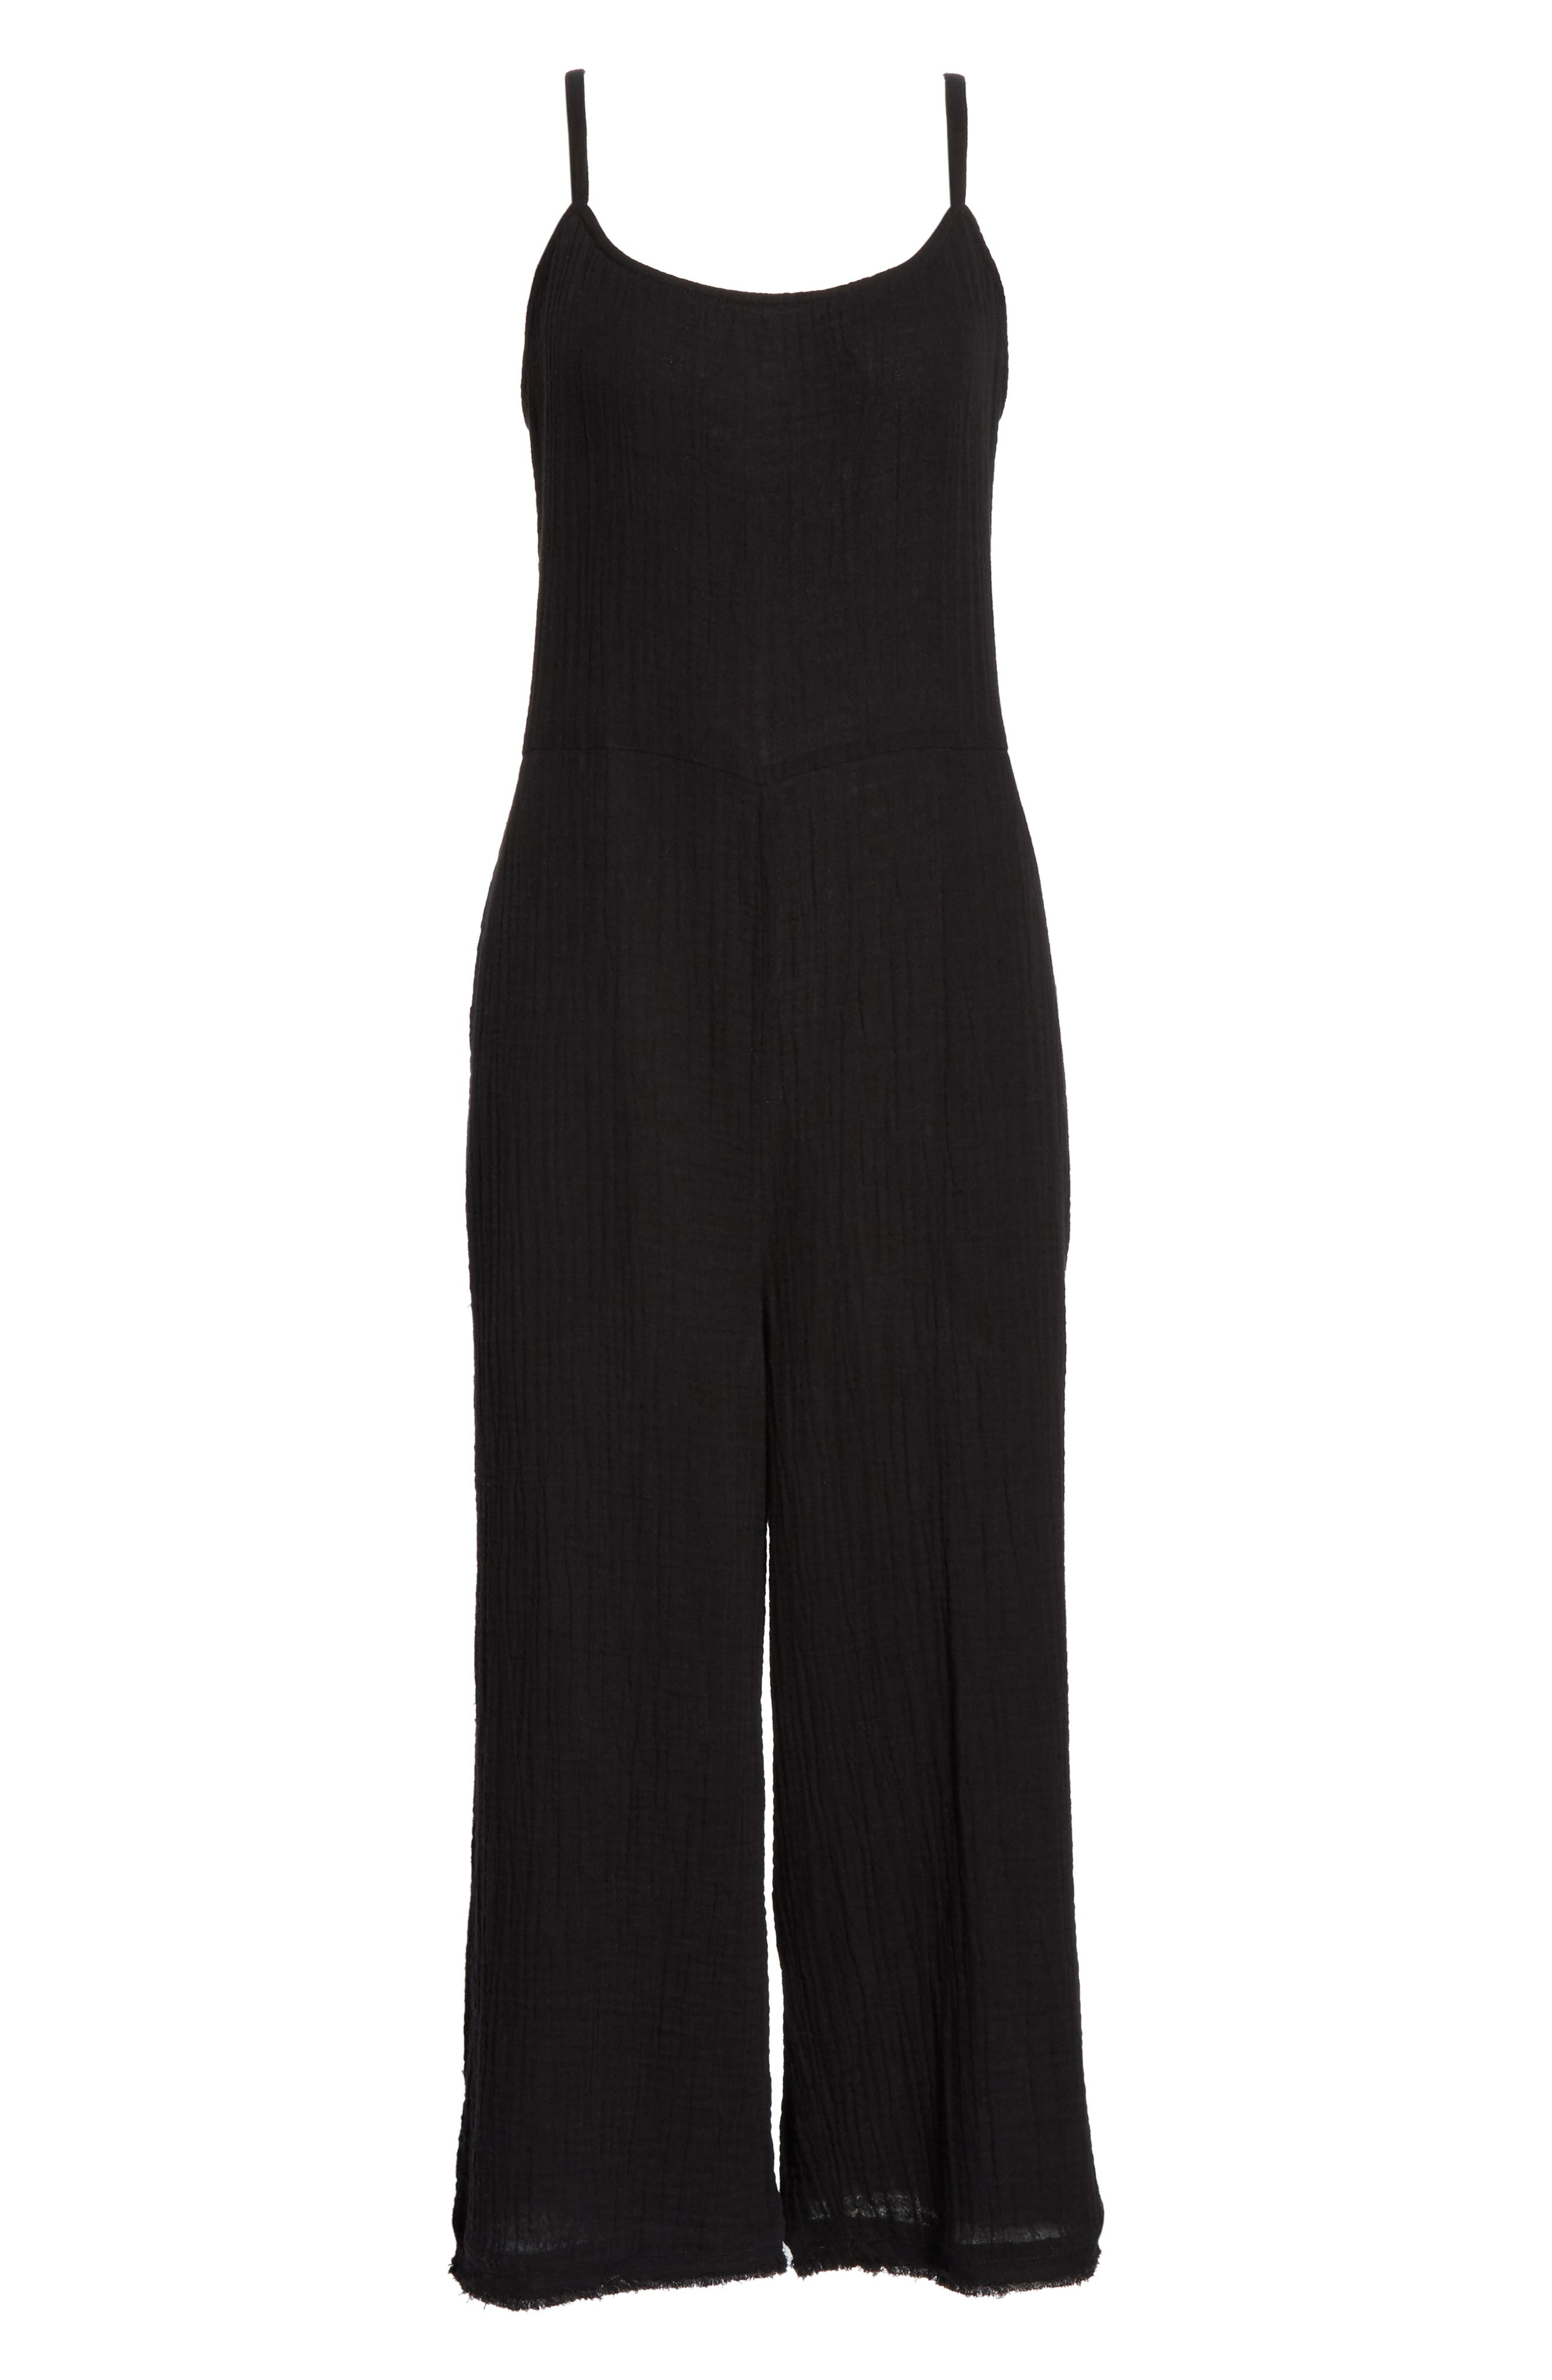 EILEEN FISHER, Camisole Jumpsuit, Alternate thumbnail 7, color, 001